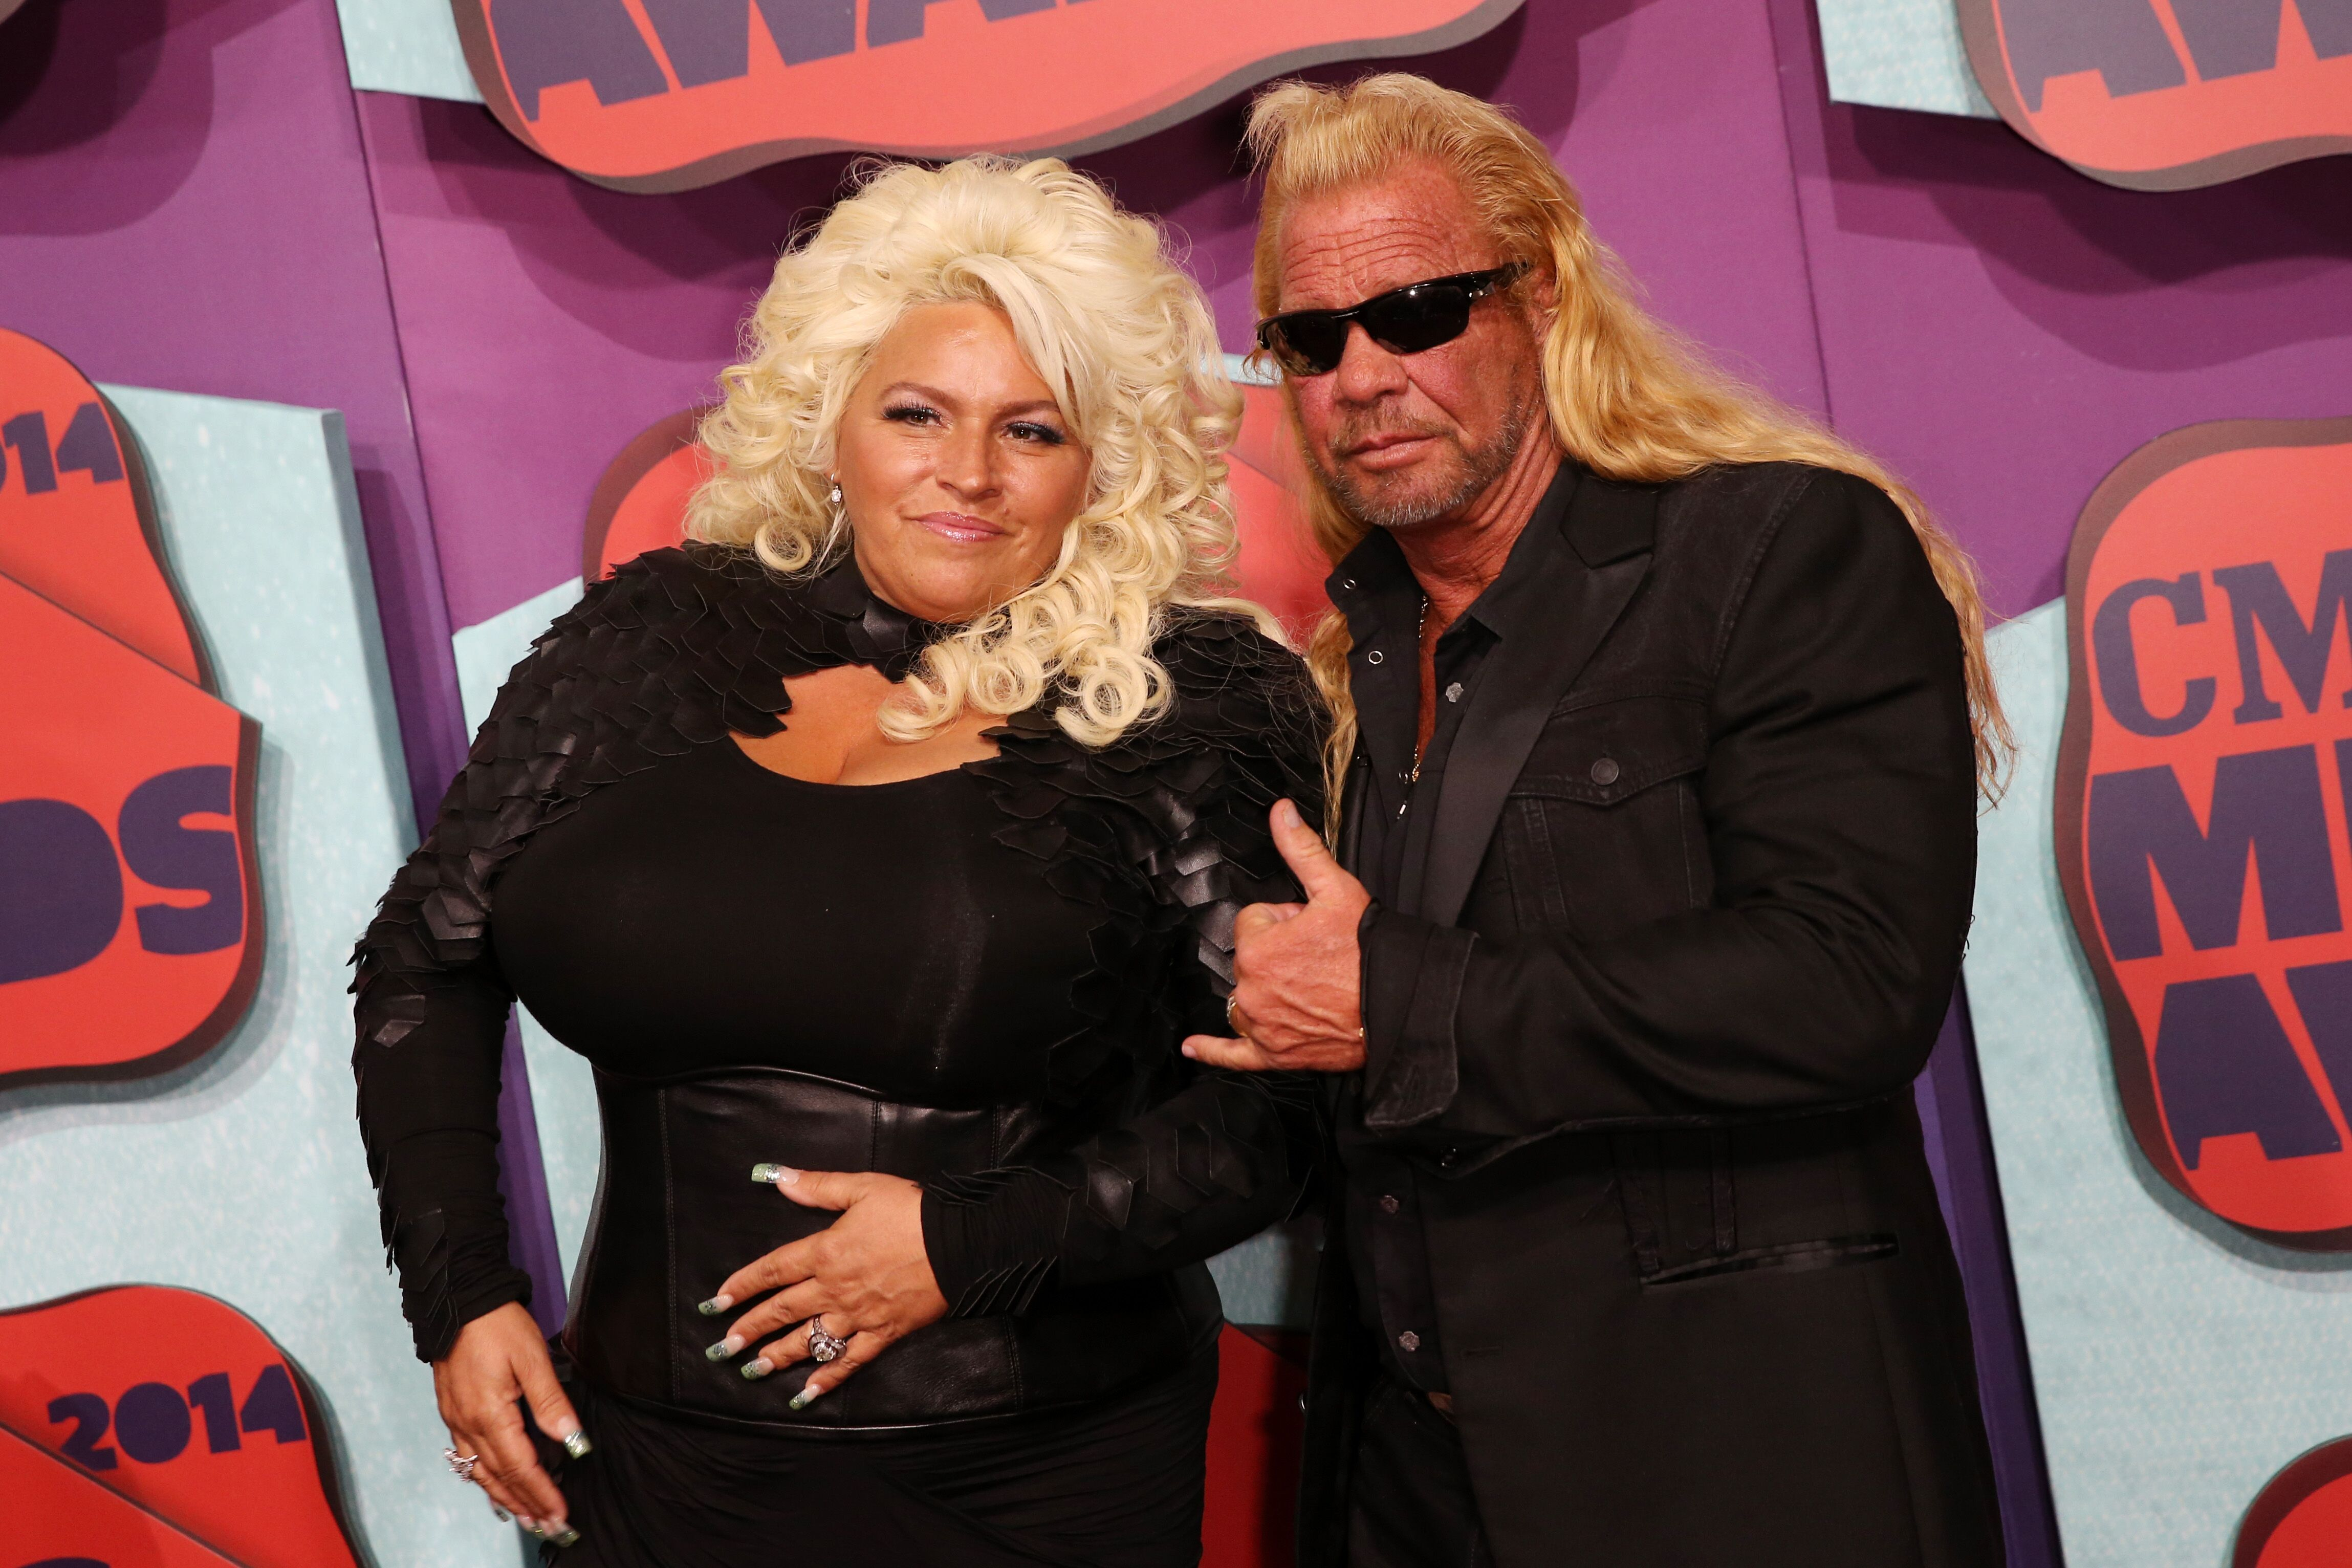 Beth Chapman and Duane Chapman attend the 2014 CMT Music awards at the Bridgestone Arena on June 4, 2014 | Photo: Getty Images